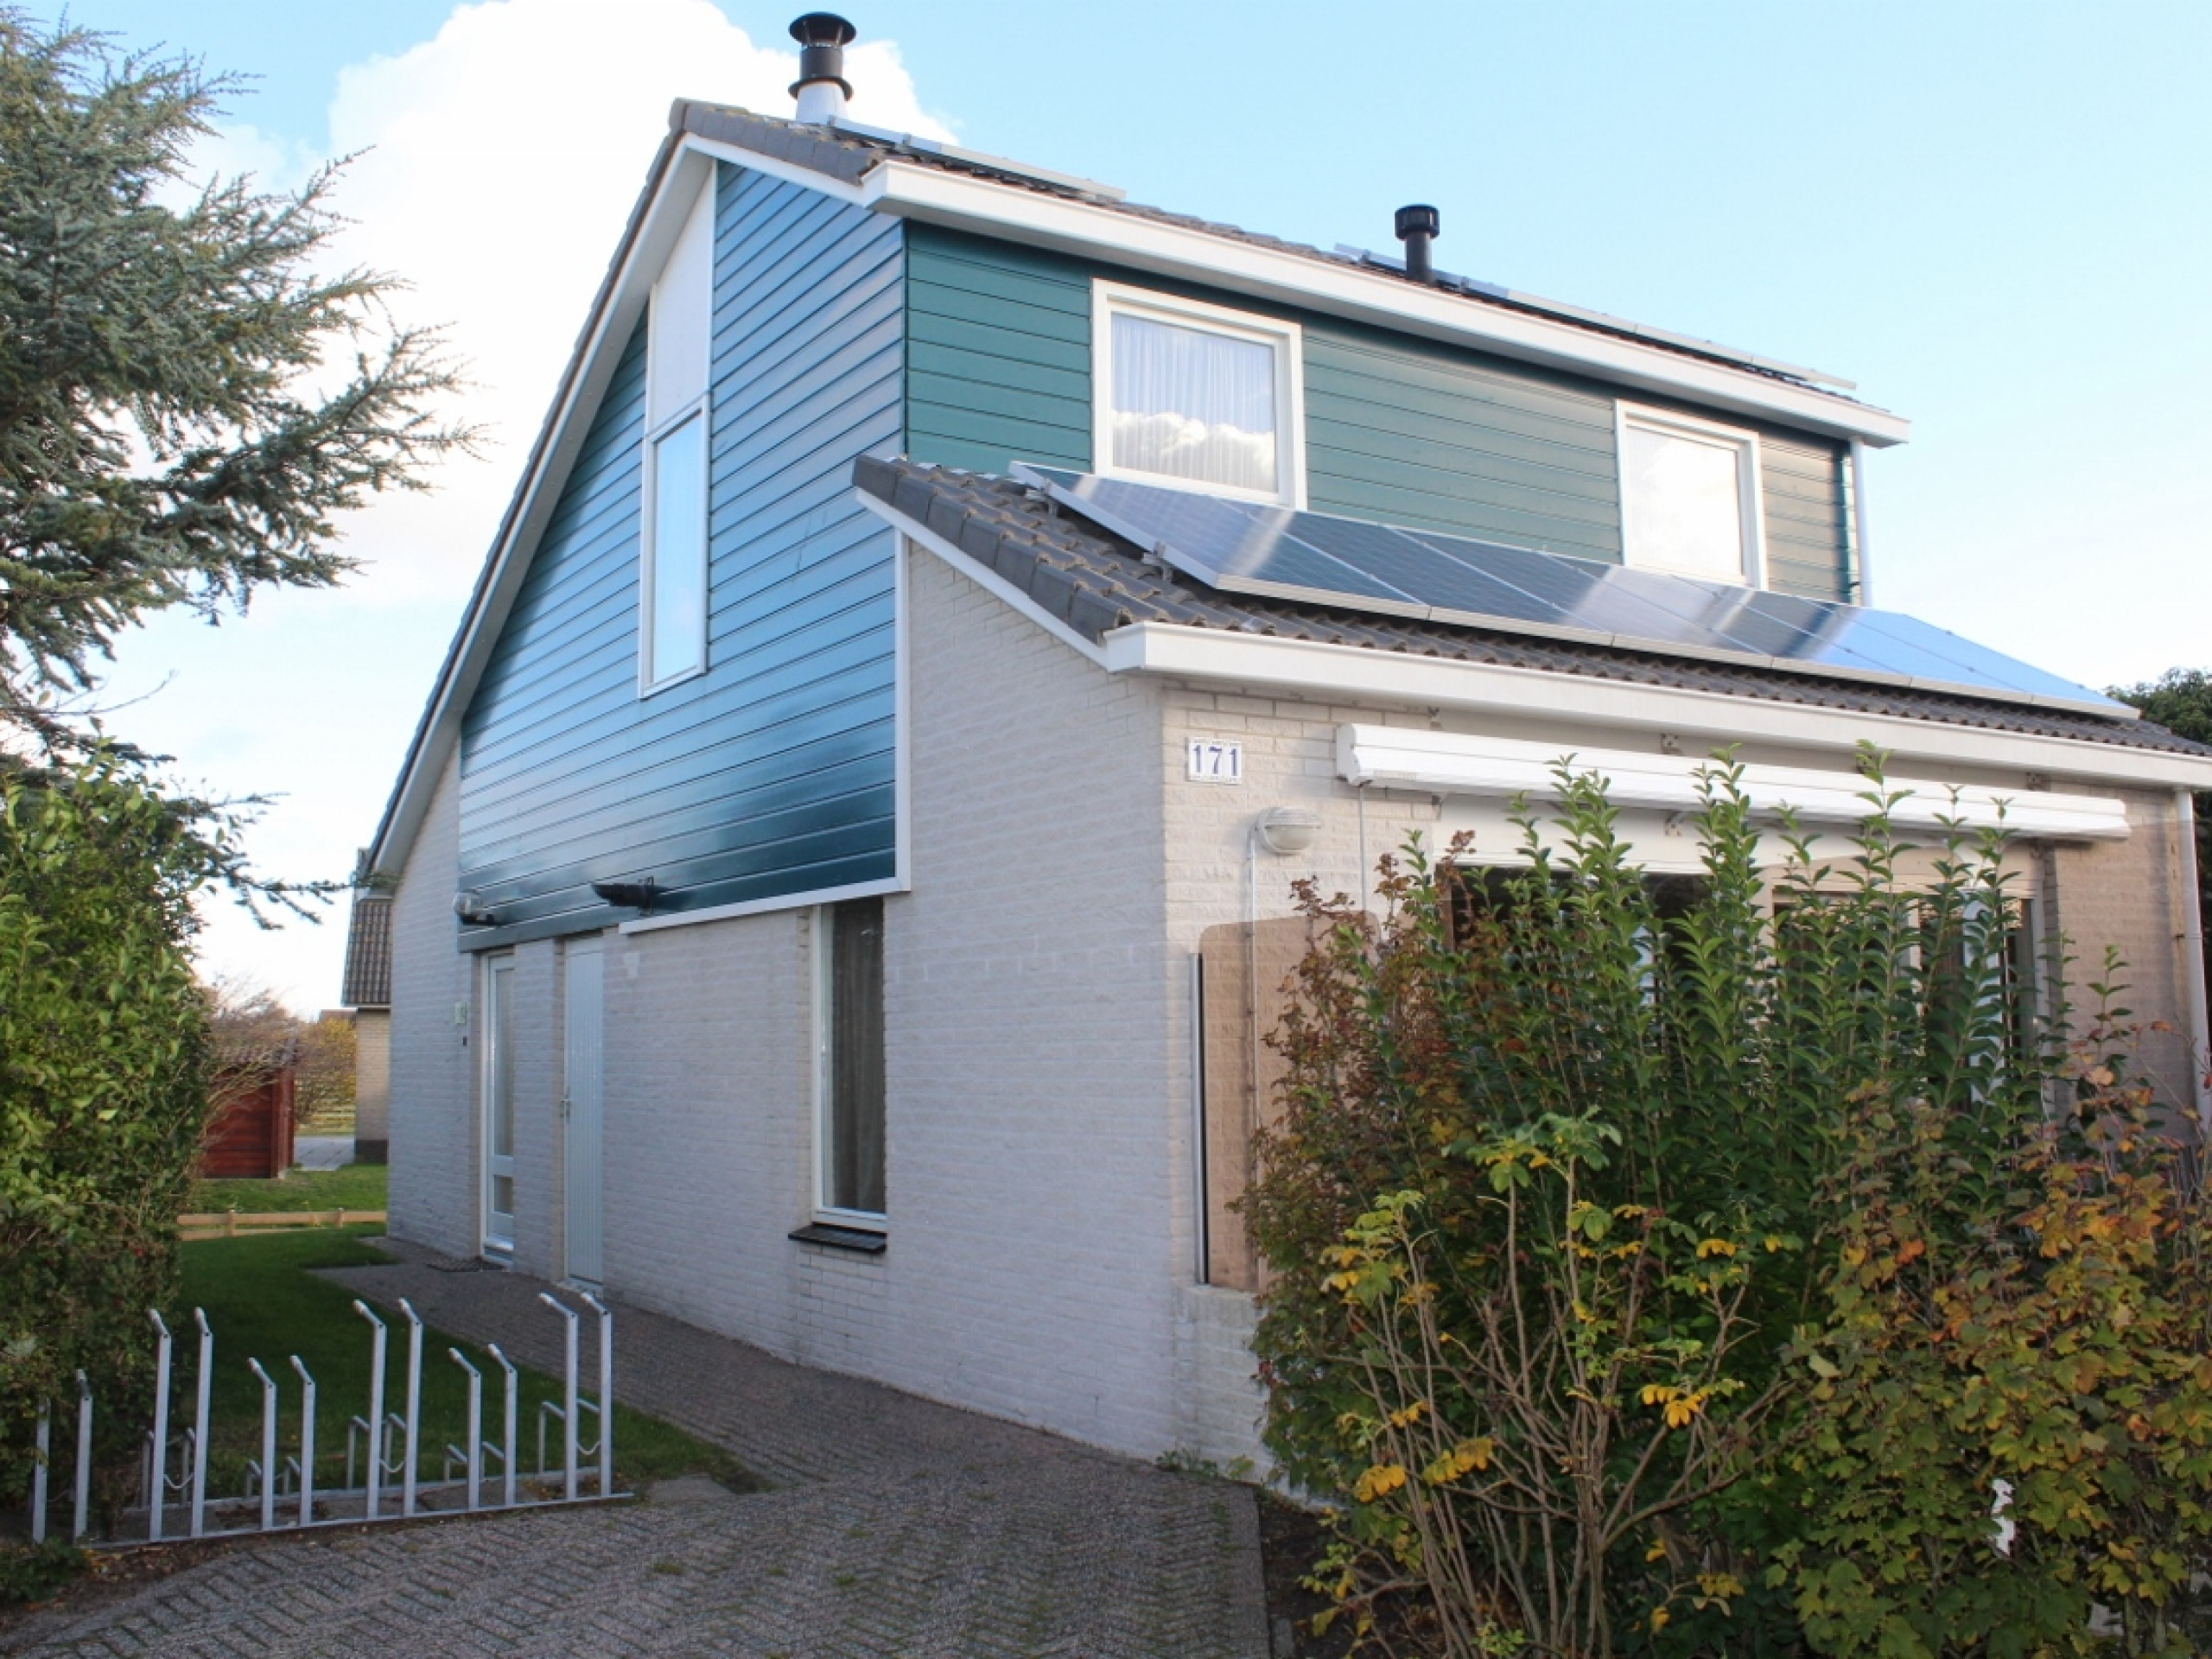 Spacious and luxurious holiday home within walking distance of the North Sea beach in De Koog